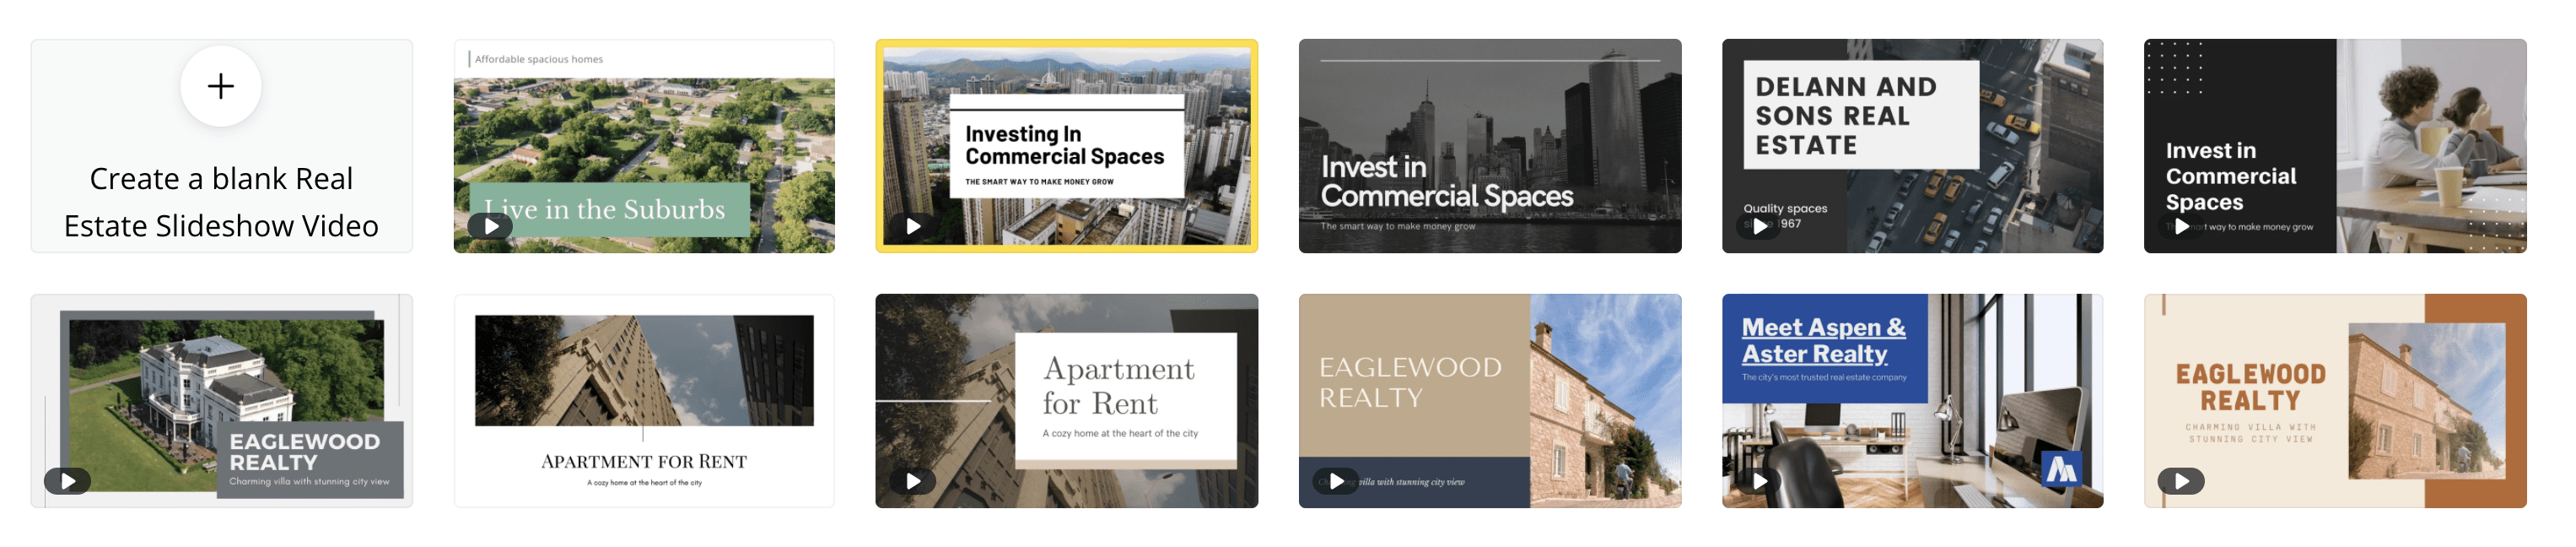 Create real estate slideshow videos with Canva.